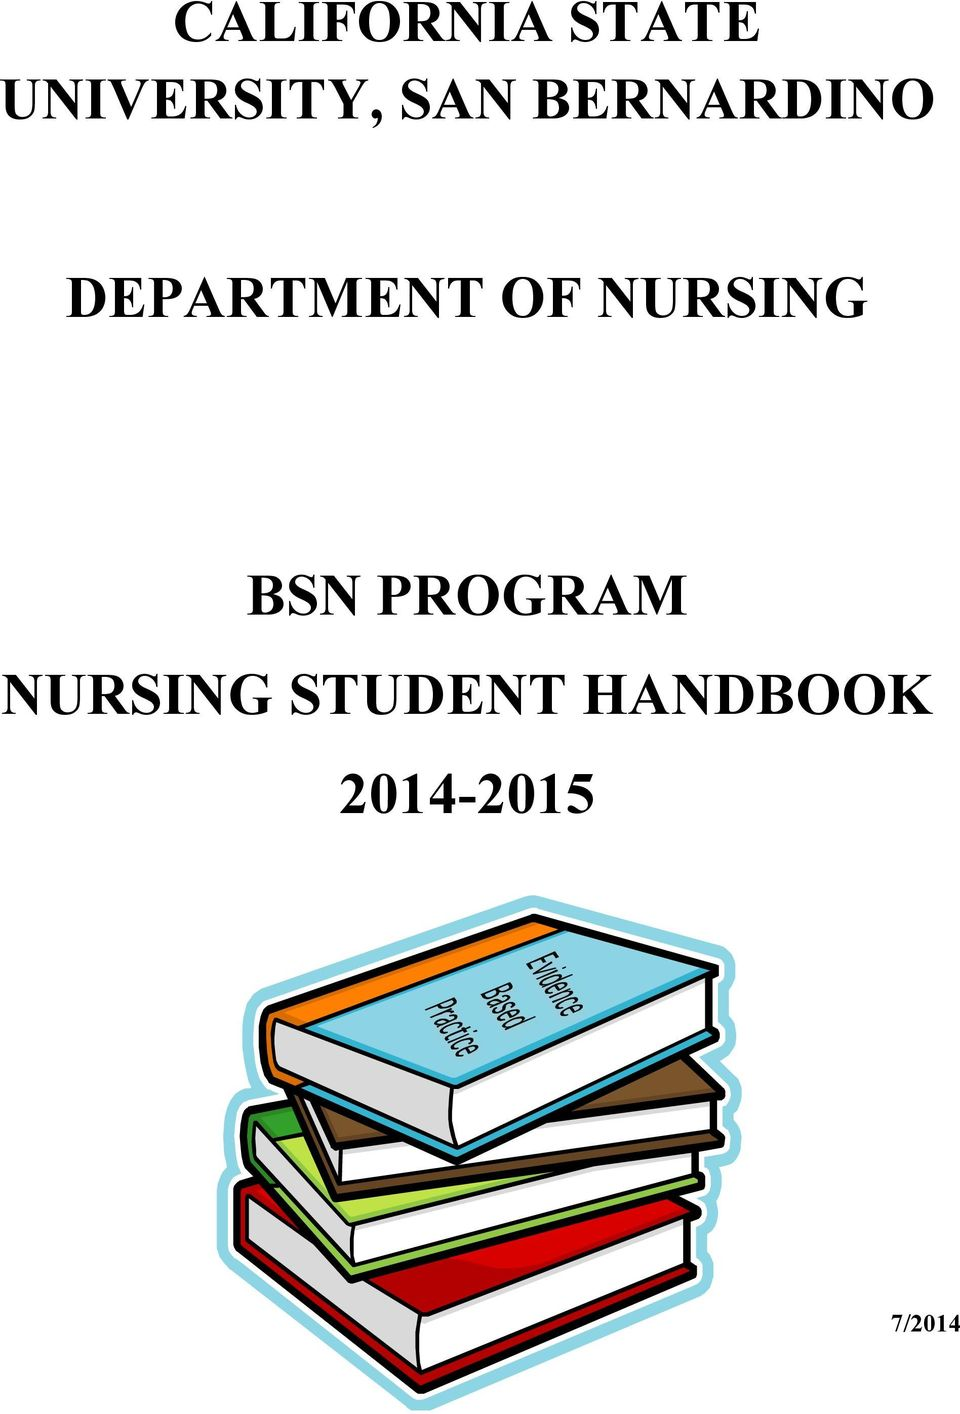 NURSING BSN PROGRAM NURSING